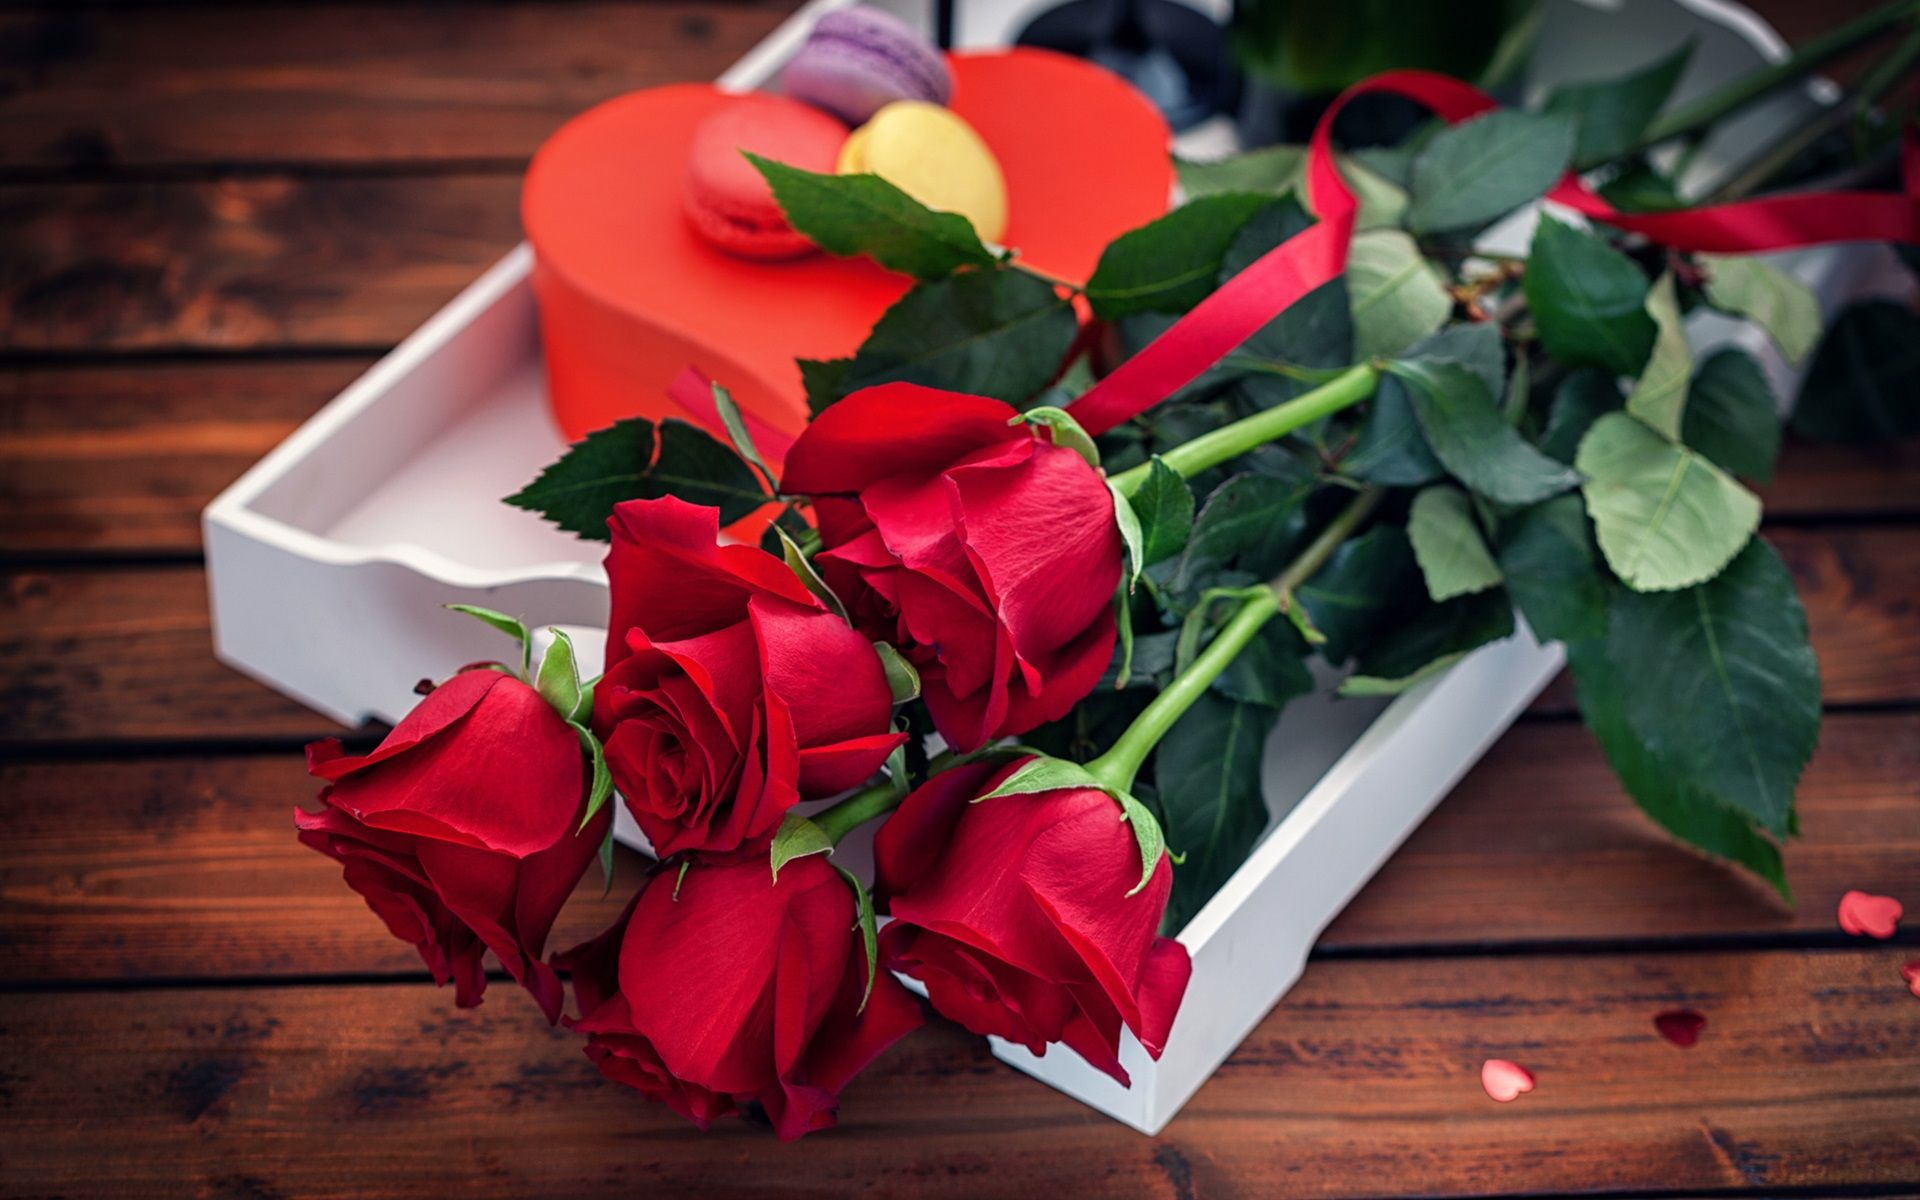 send flowers to croatia, Order any occasion flowers bouquet delivered to door step by local florist croatia online.